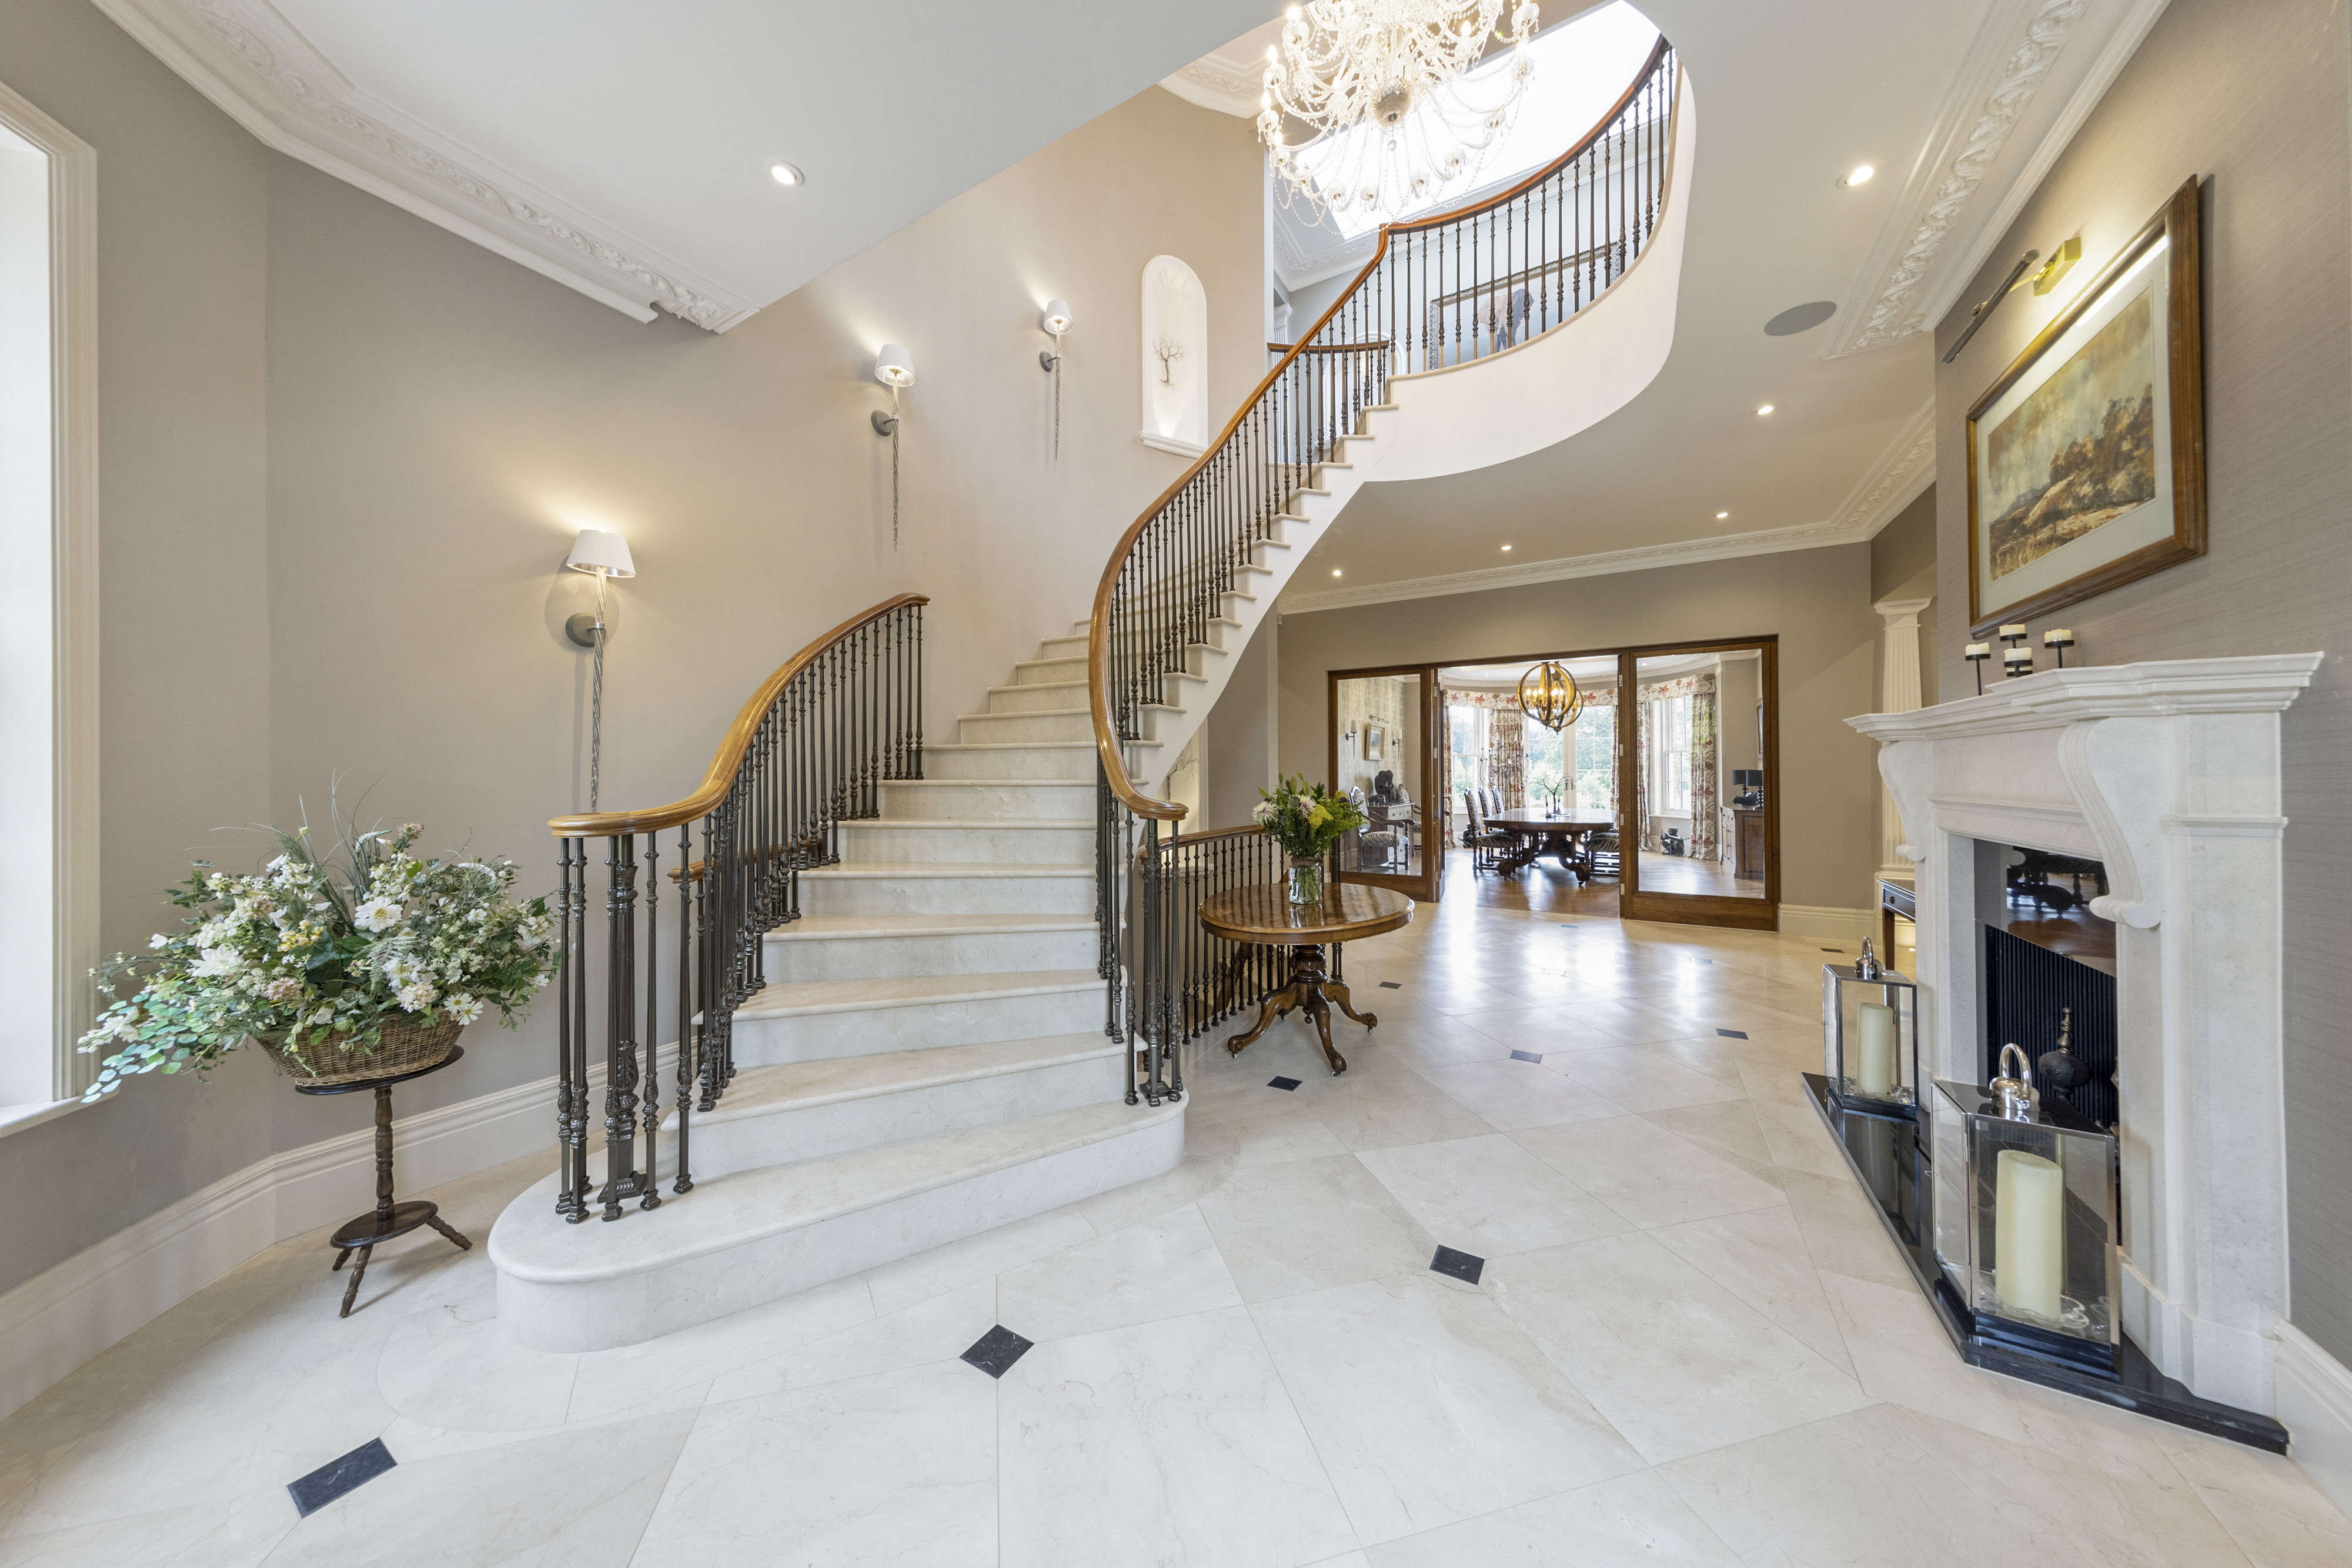 a grand entrance with sweeping staircase and marble floors